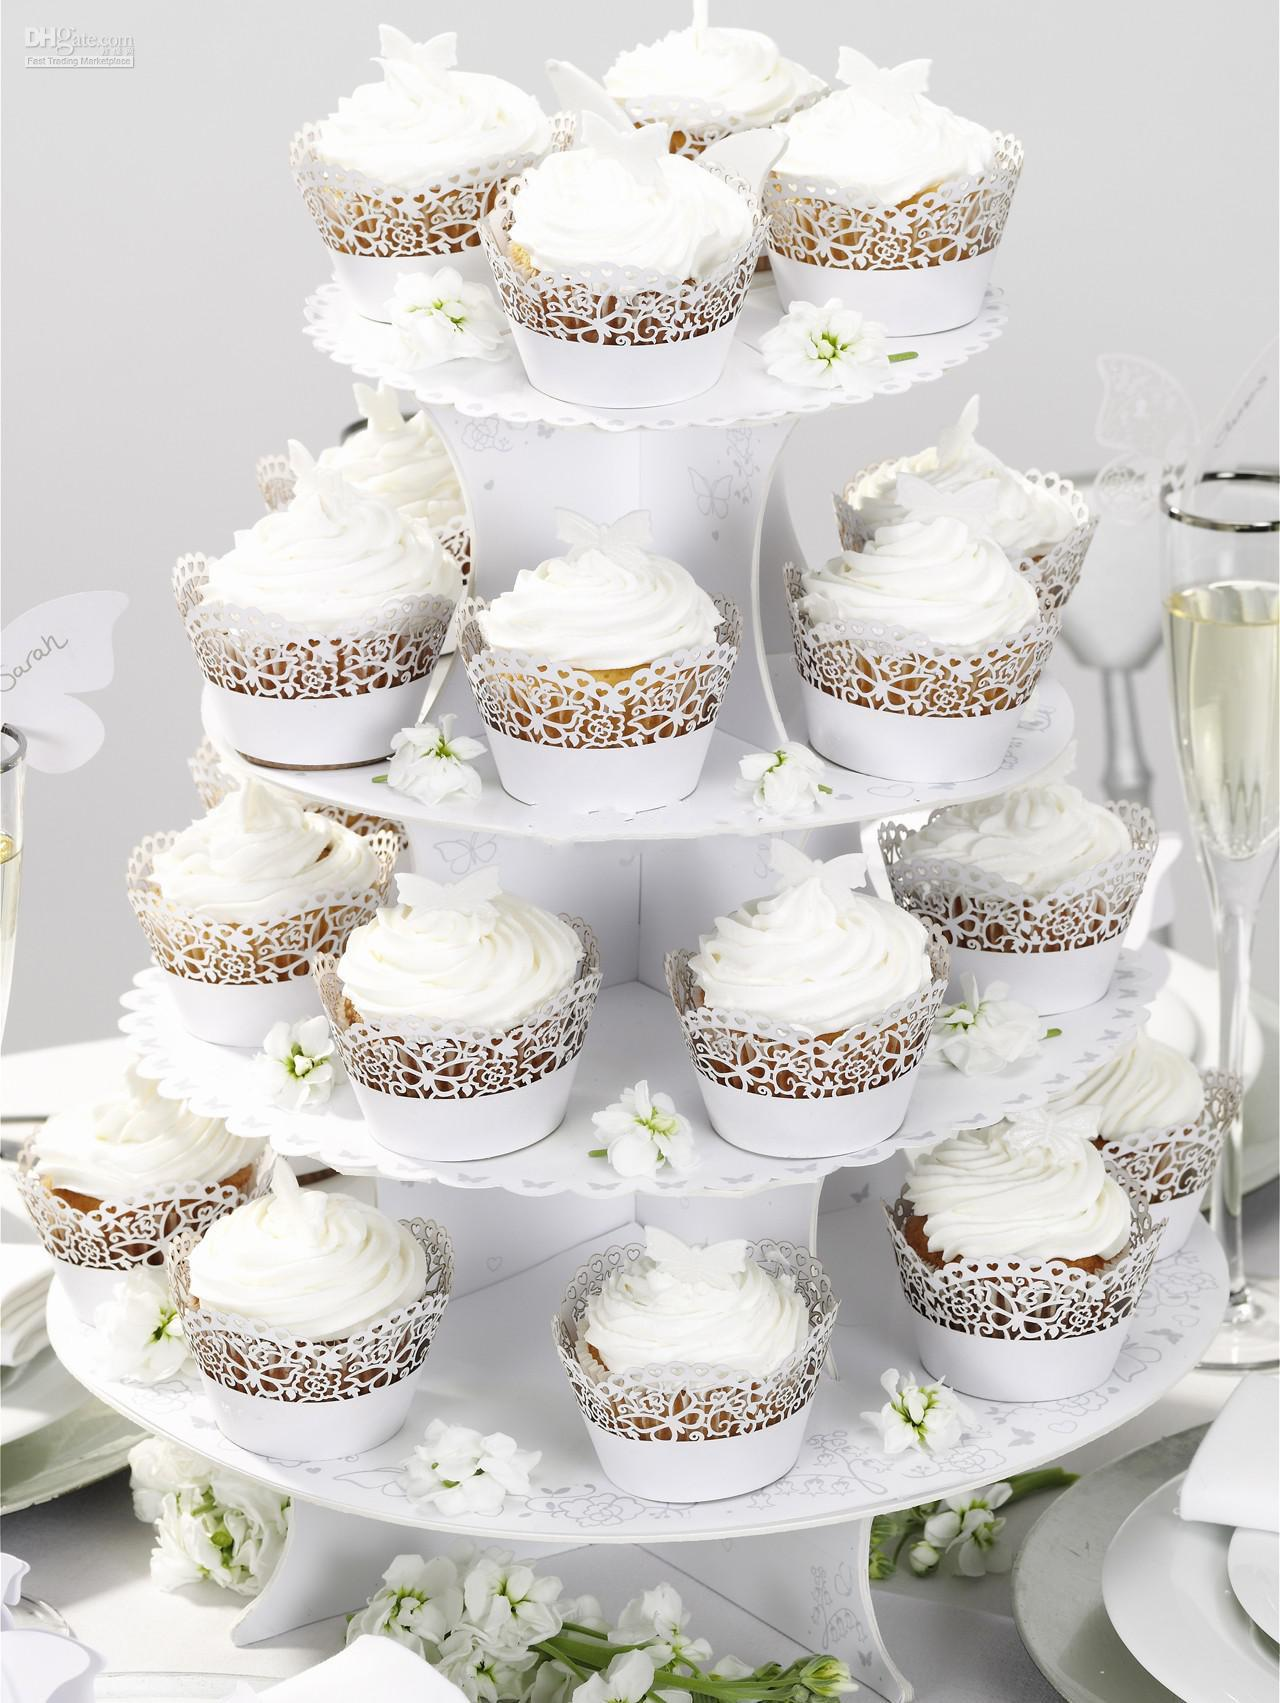 New 2014 Laser Cut Filigree Cupcake Wrapper Around The Edges Cake Liners Decorating Box For Wedding Baby Shown Favor Supplies 200 Design